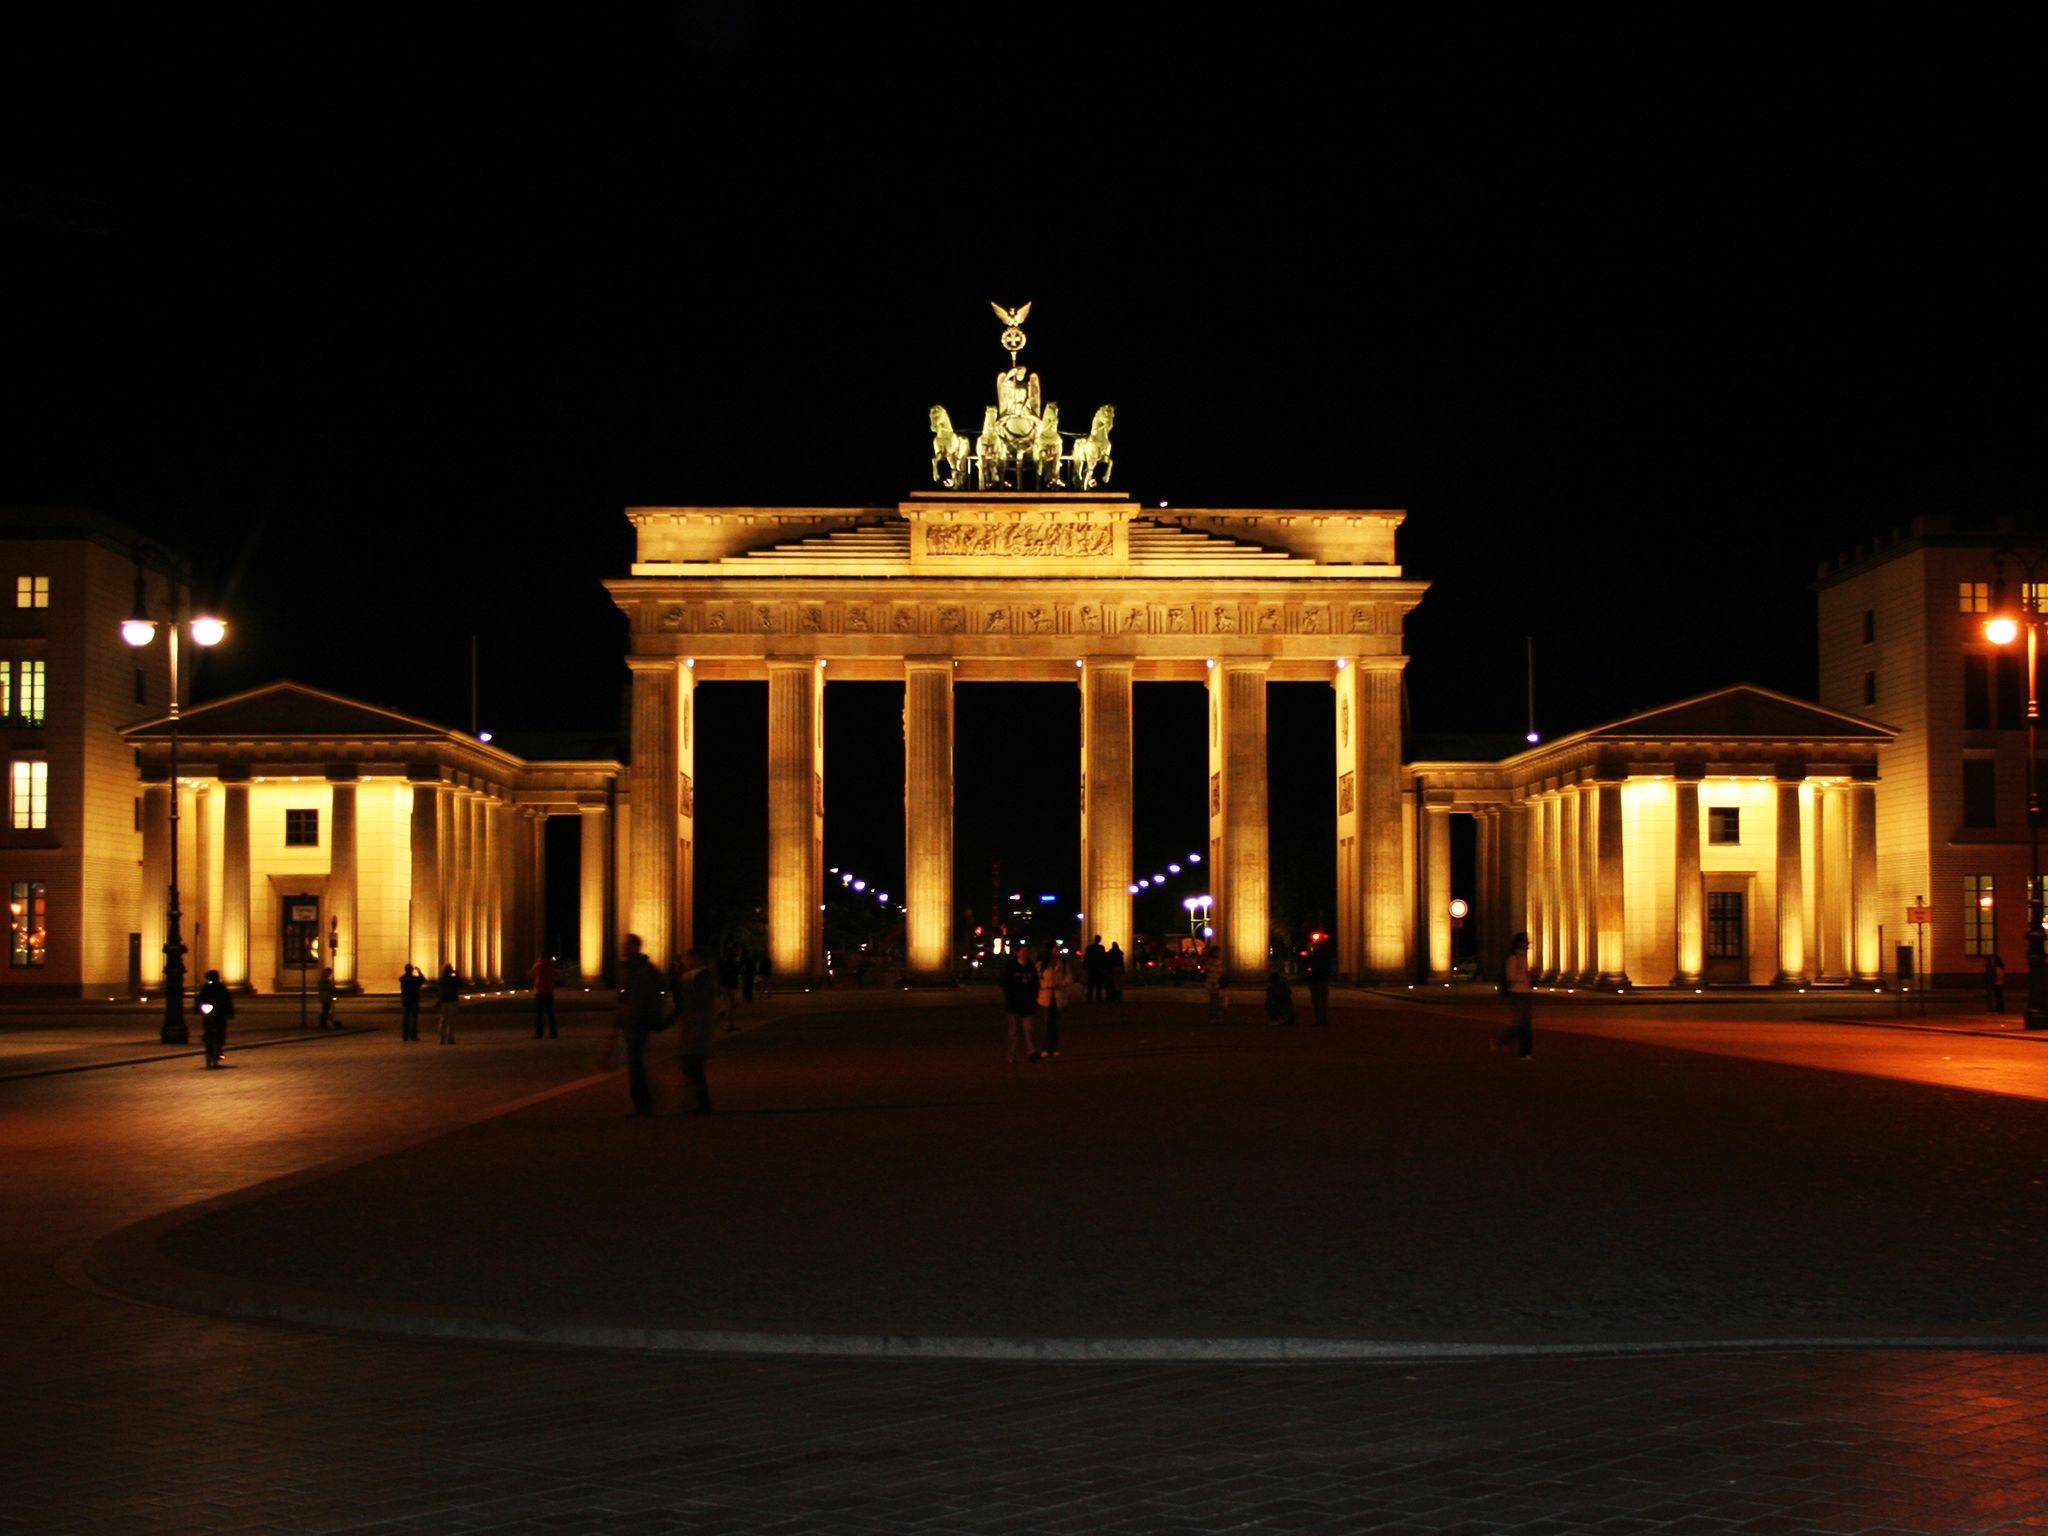 Brandenburg Gate in Berlin at night. This image is from Hasselhoff vs. The Berlin Wall. [Dagens foto - november 2014]